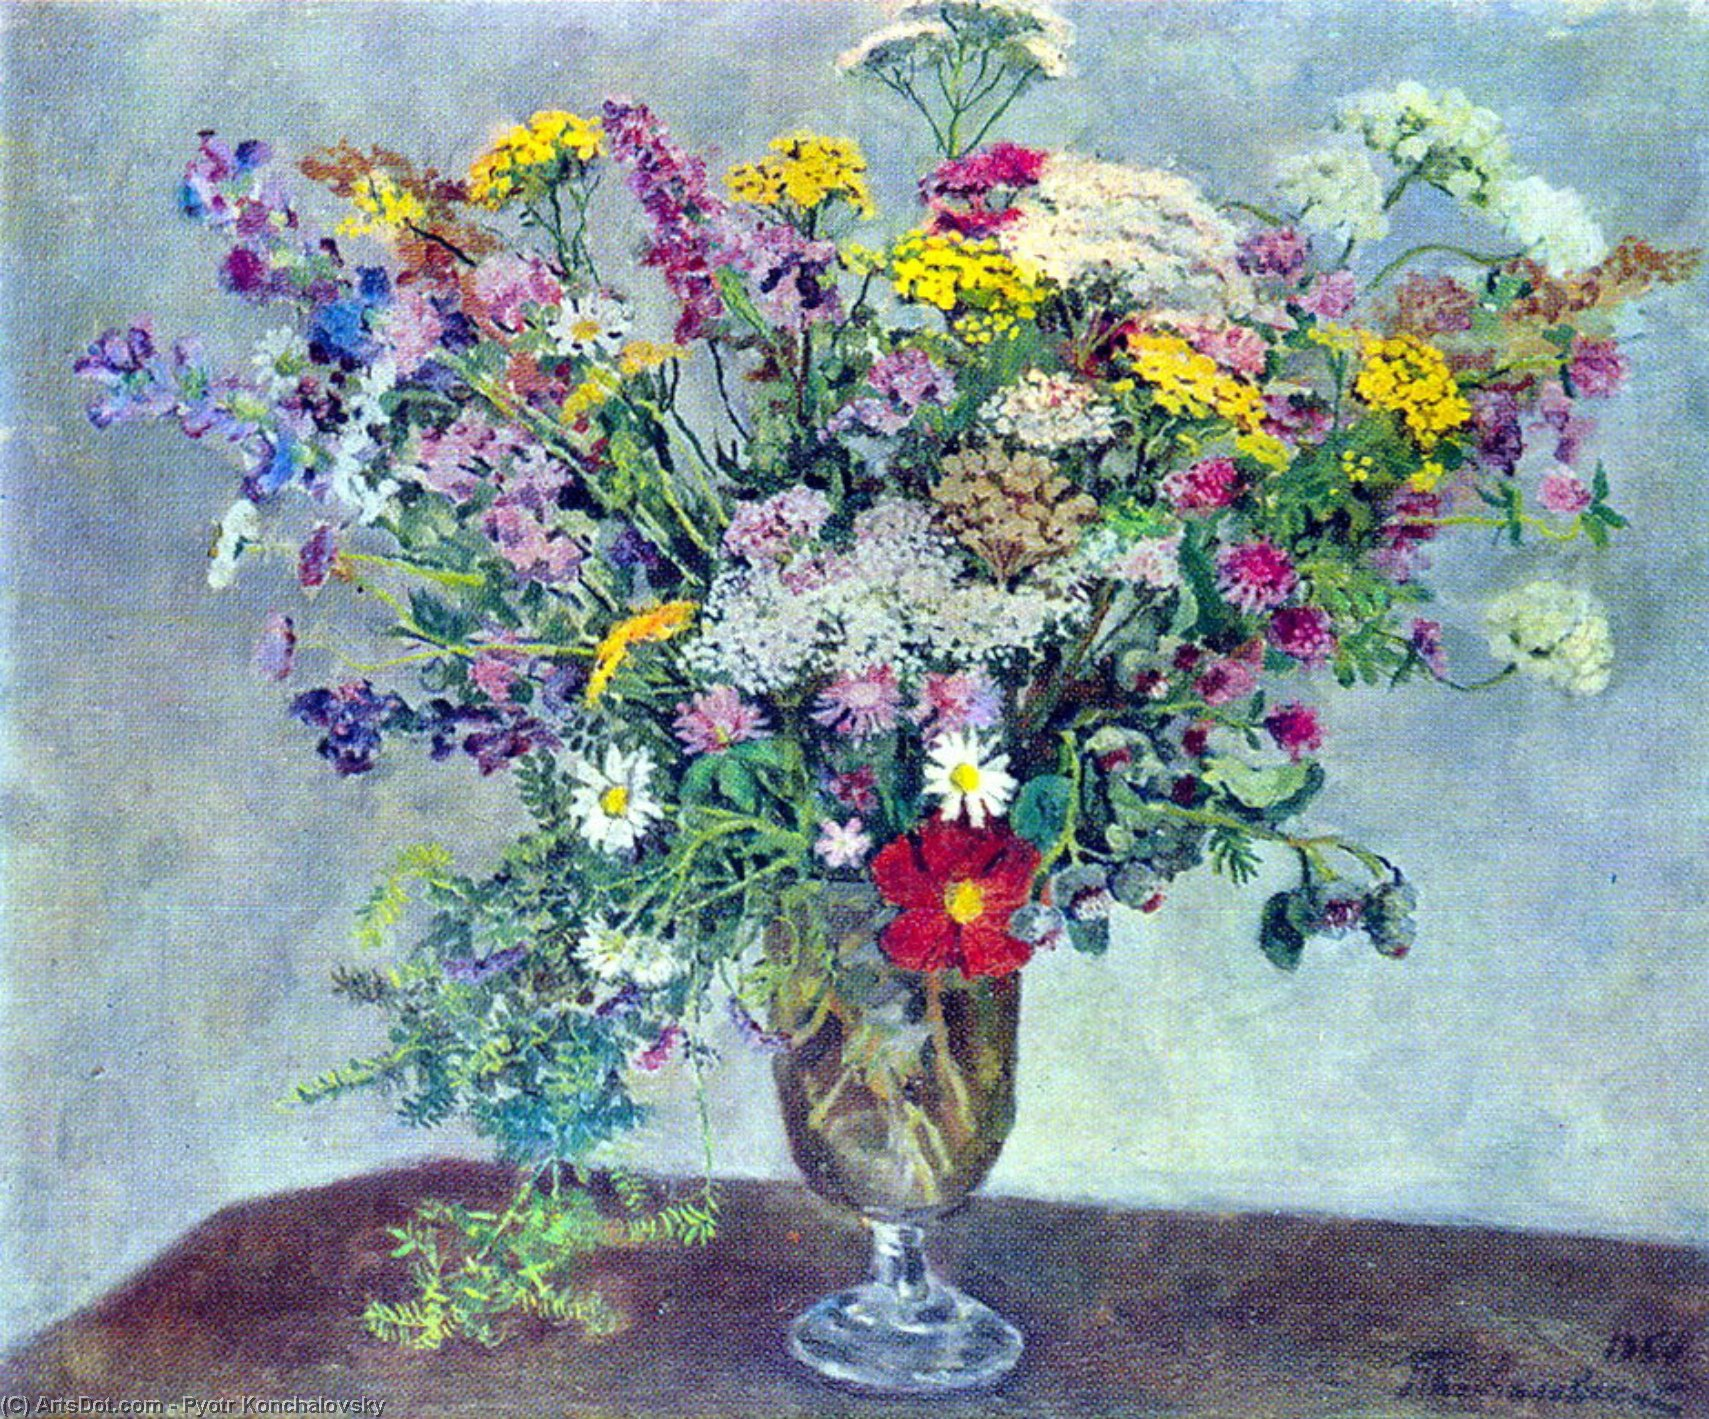 Still Life. Wildflowers., 1950 by Pyotr Konchalovsky (1876-1956, Russia)